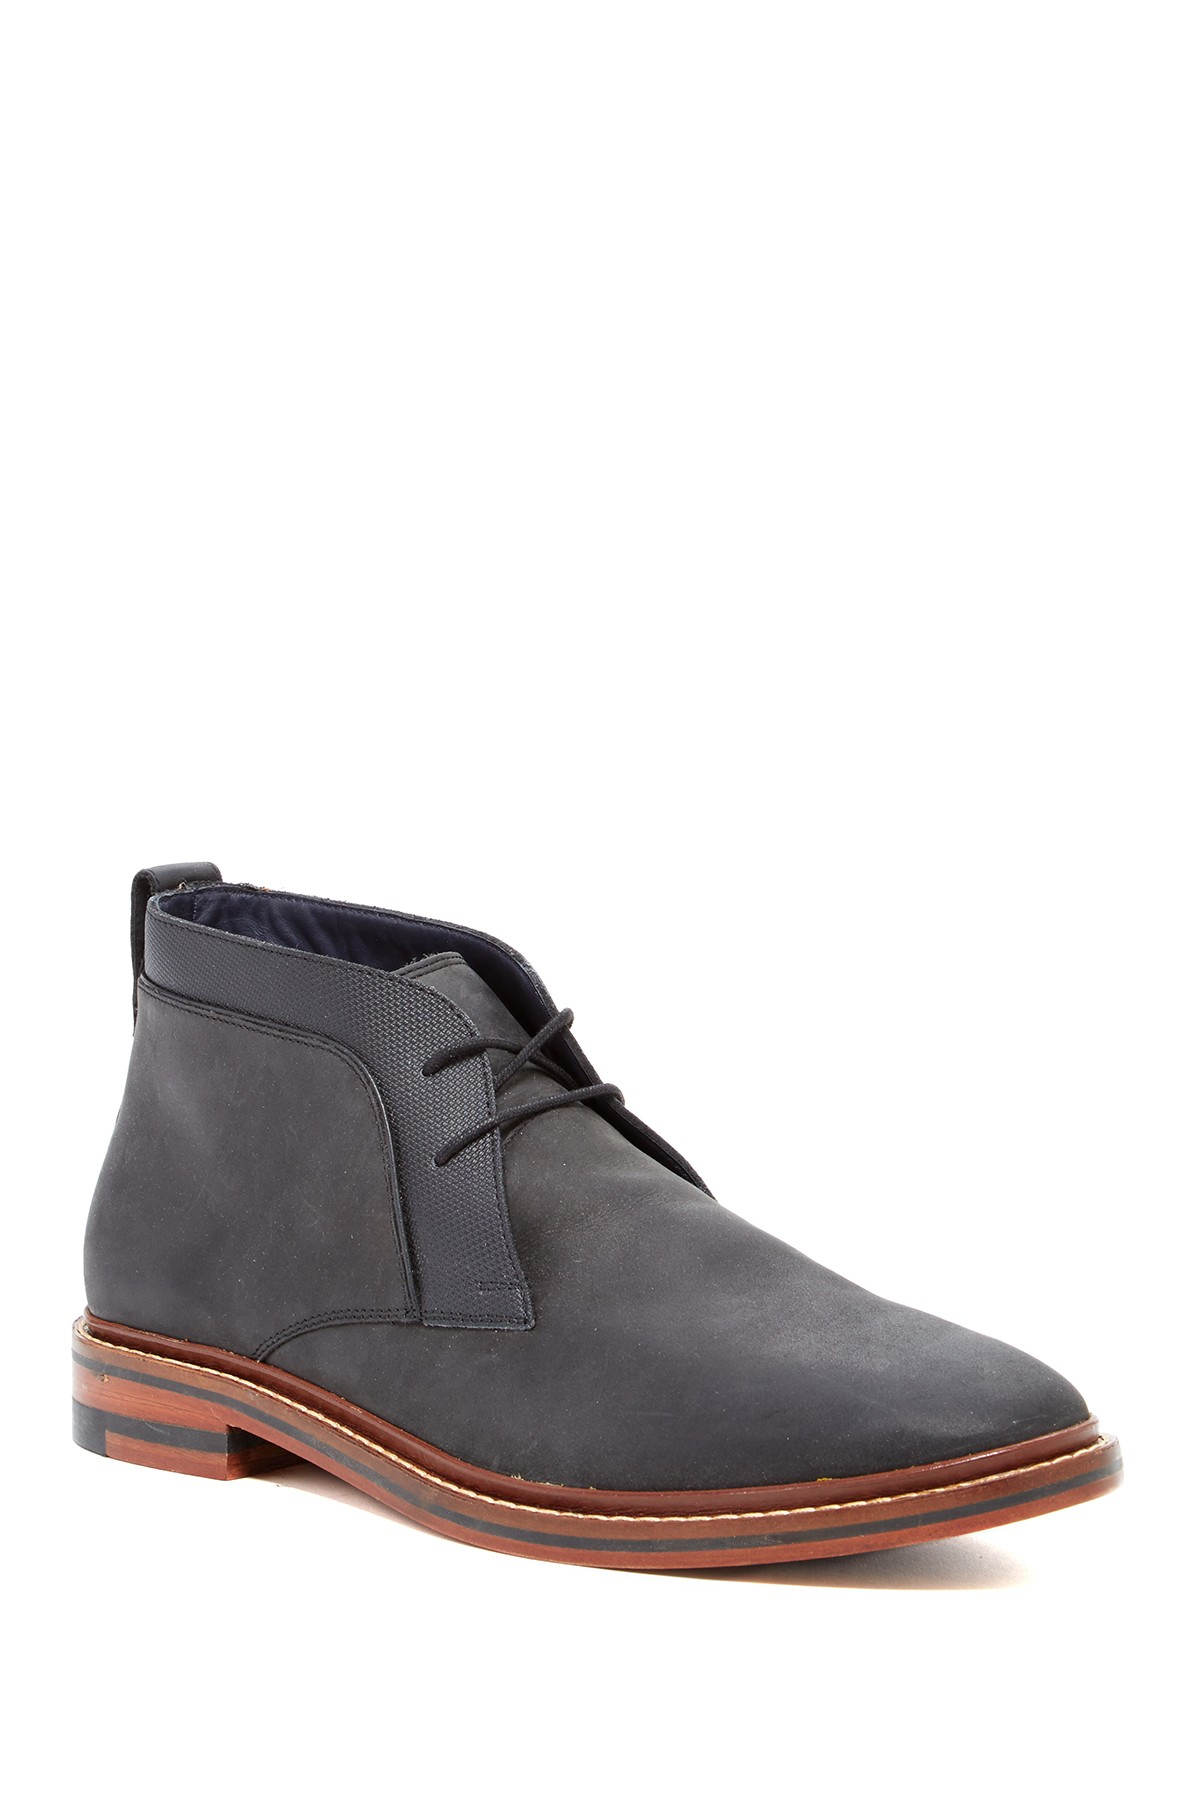 cole haan cambridge chukka boot in black for save 44